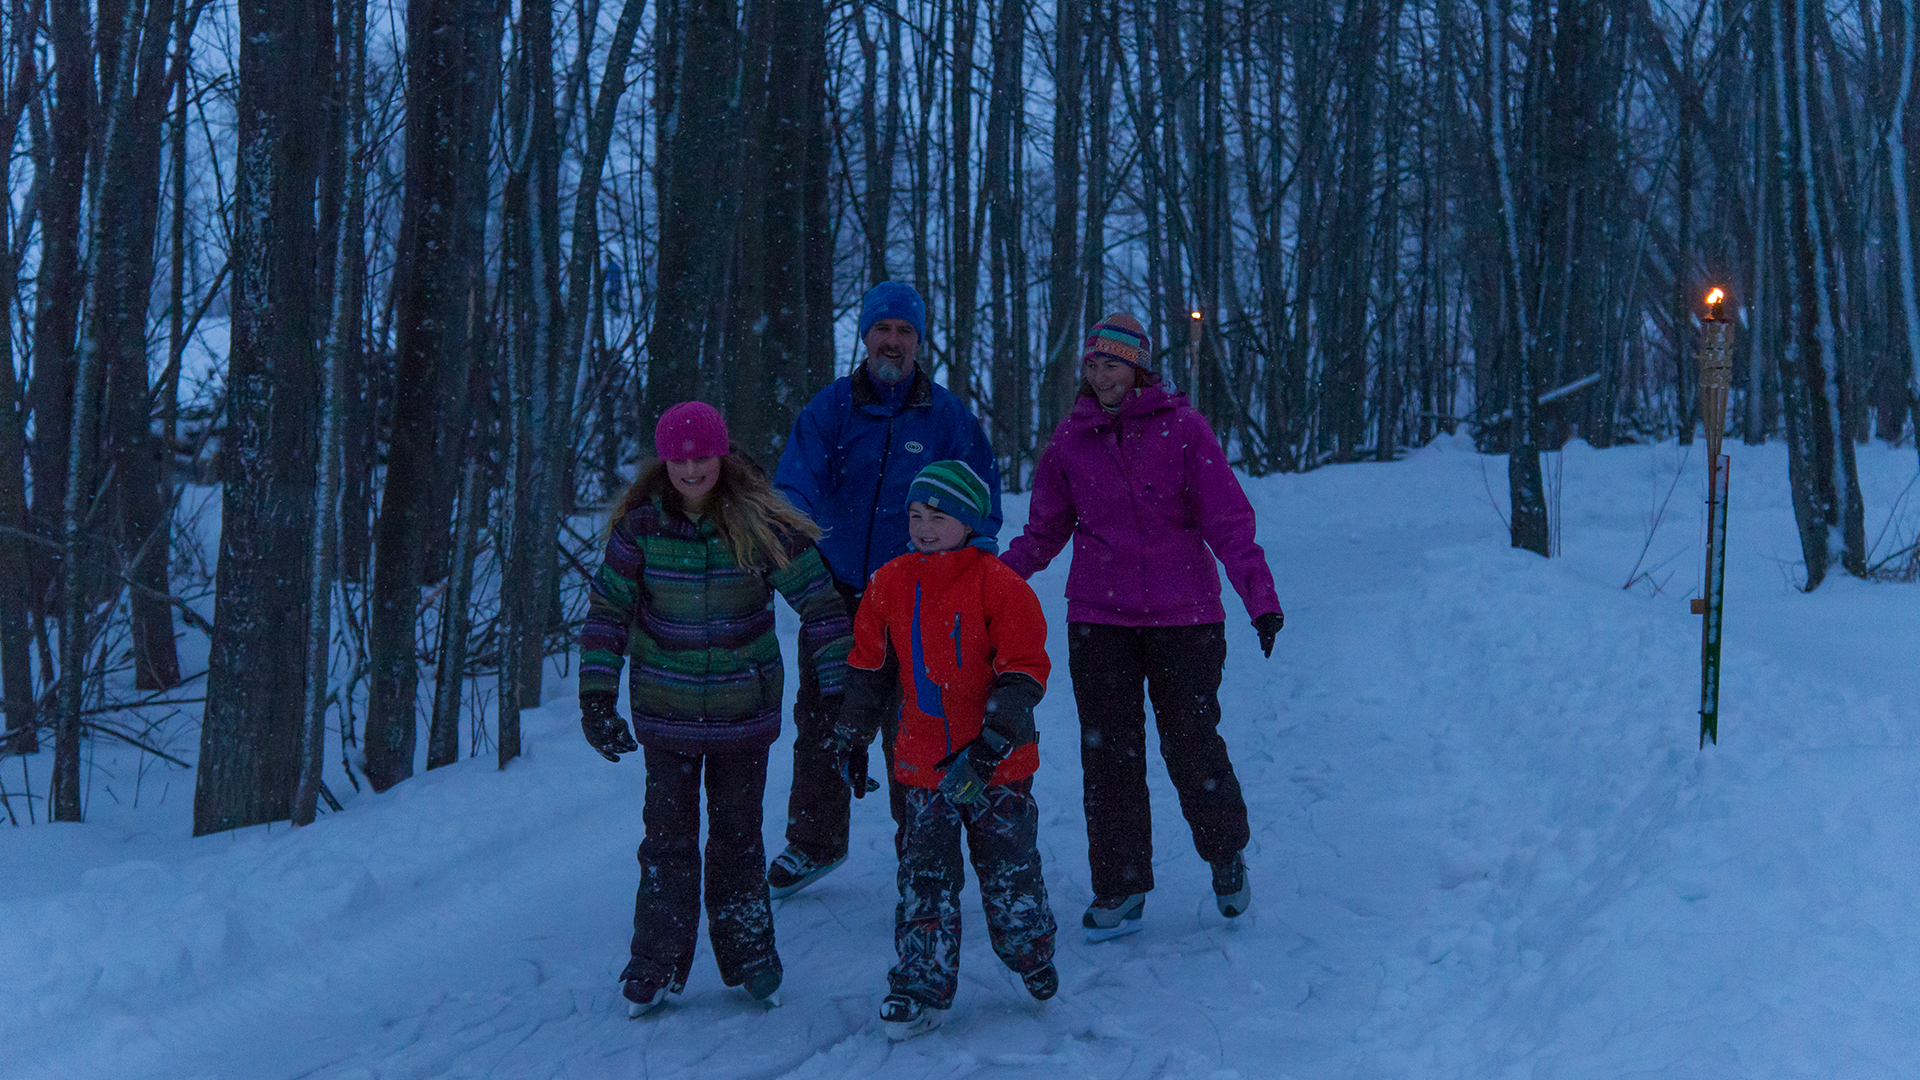 Fern Resort - Top Winter Experiences in Ontario's Lake Country